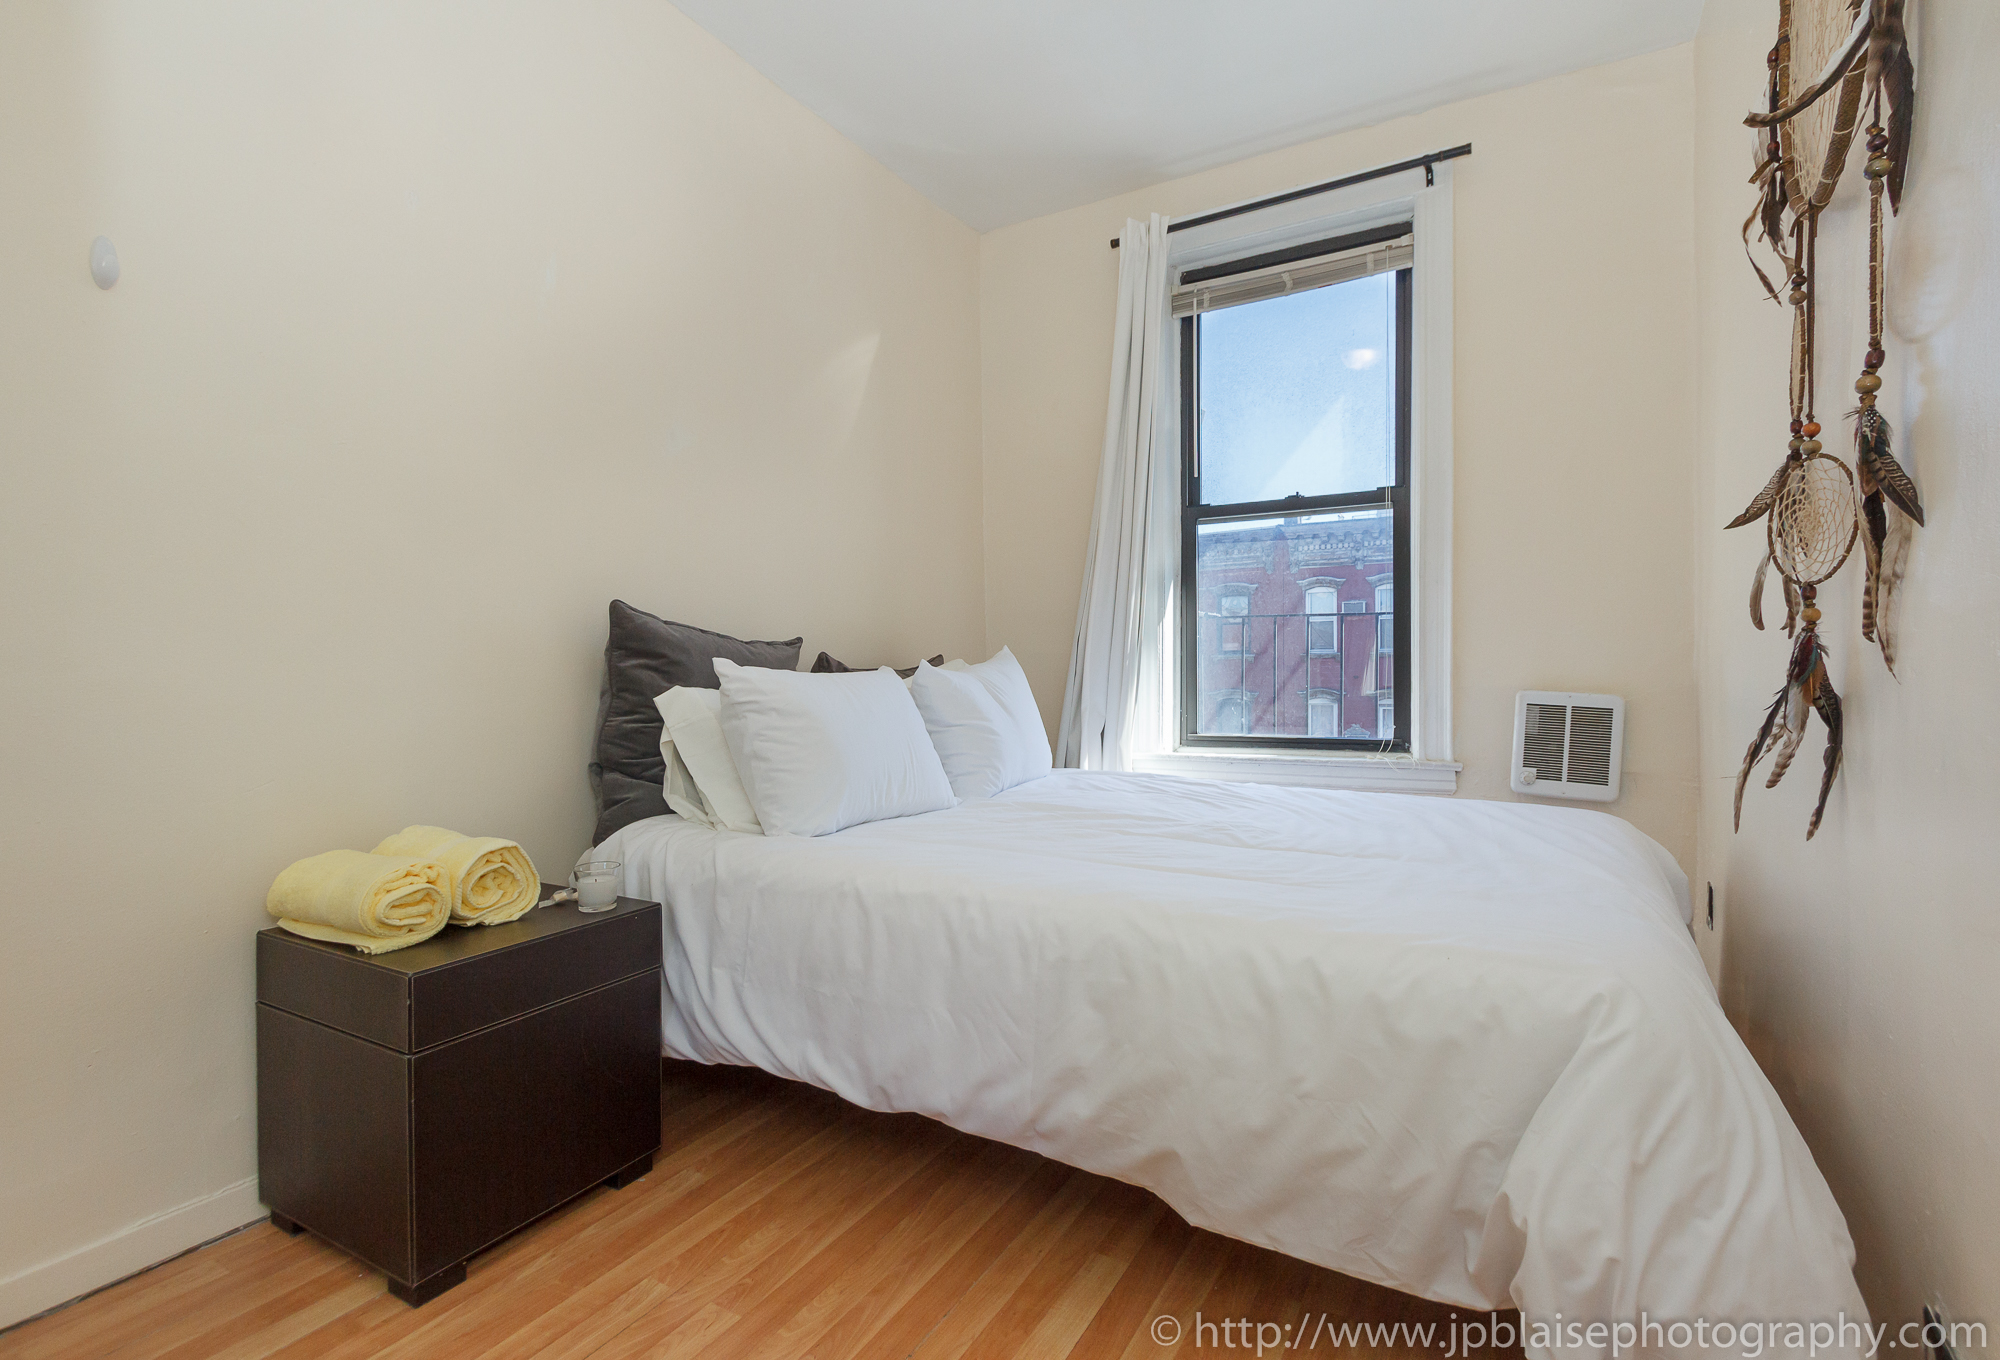 2 bedroom apartment recent nyc apartment photographer work cozy 2 bedroom 1 10010